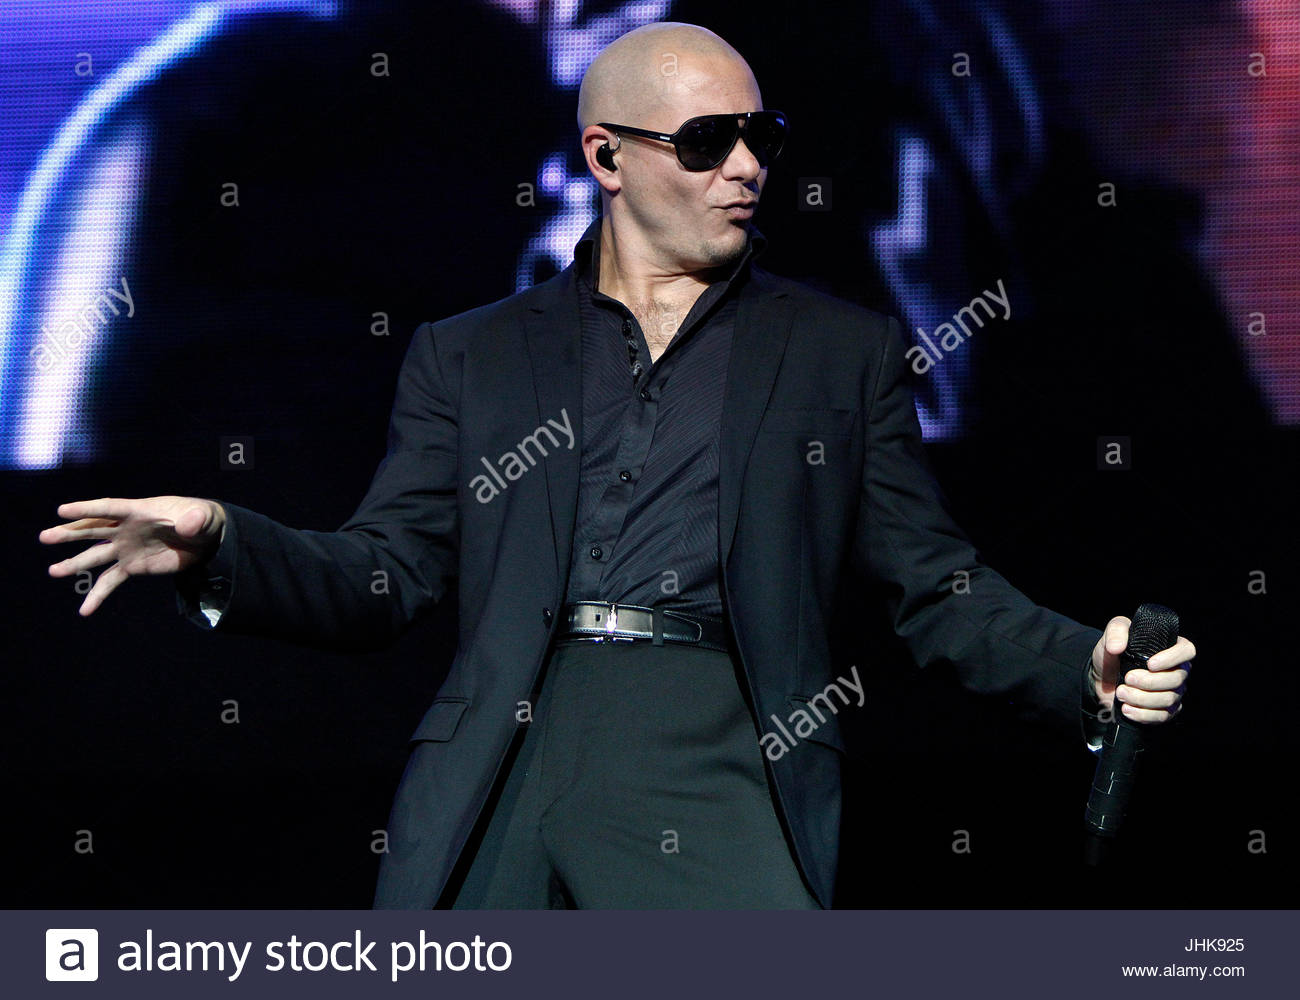 Pitbull rapper songwriter and record producer armando prez stock pitbull rapper songwriter and record producer armando prez better known as pitbull took to the stage at aarons lakewood amphitheater in atlanta ga voltagebd Image collections